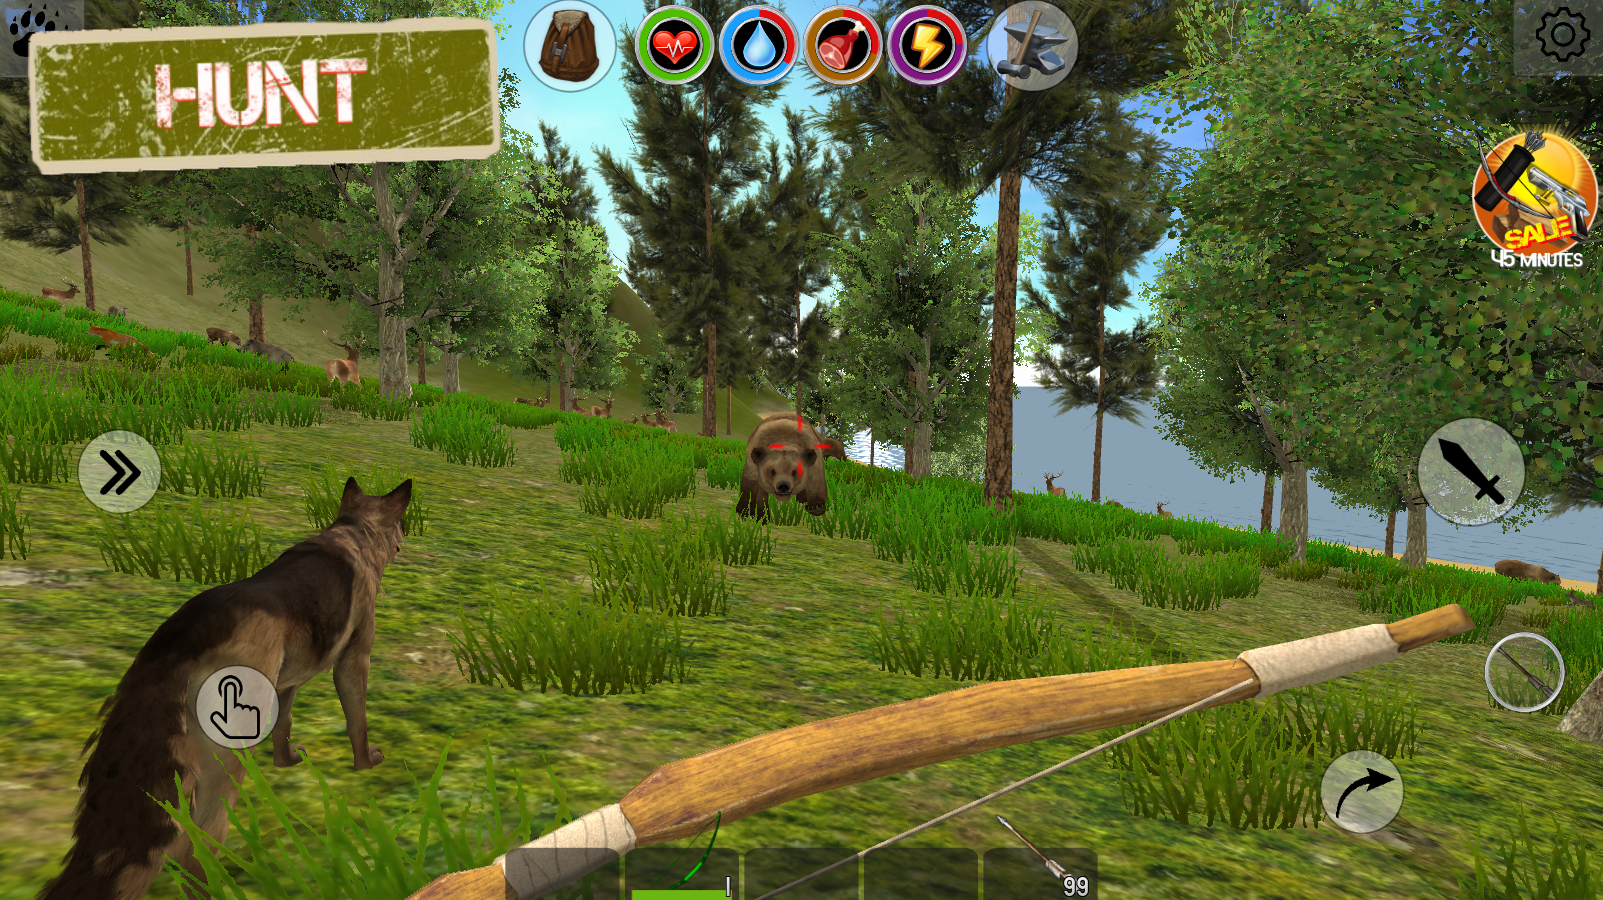 Rustland last day survival and craft island 3d android for Survival fishing games